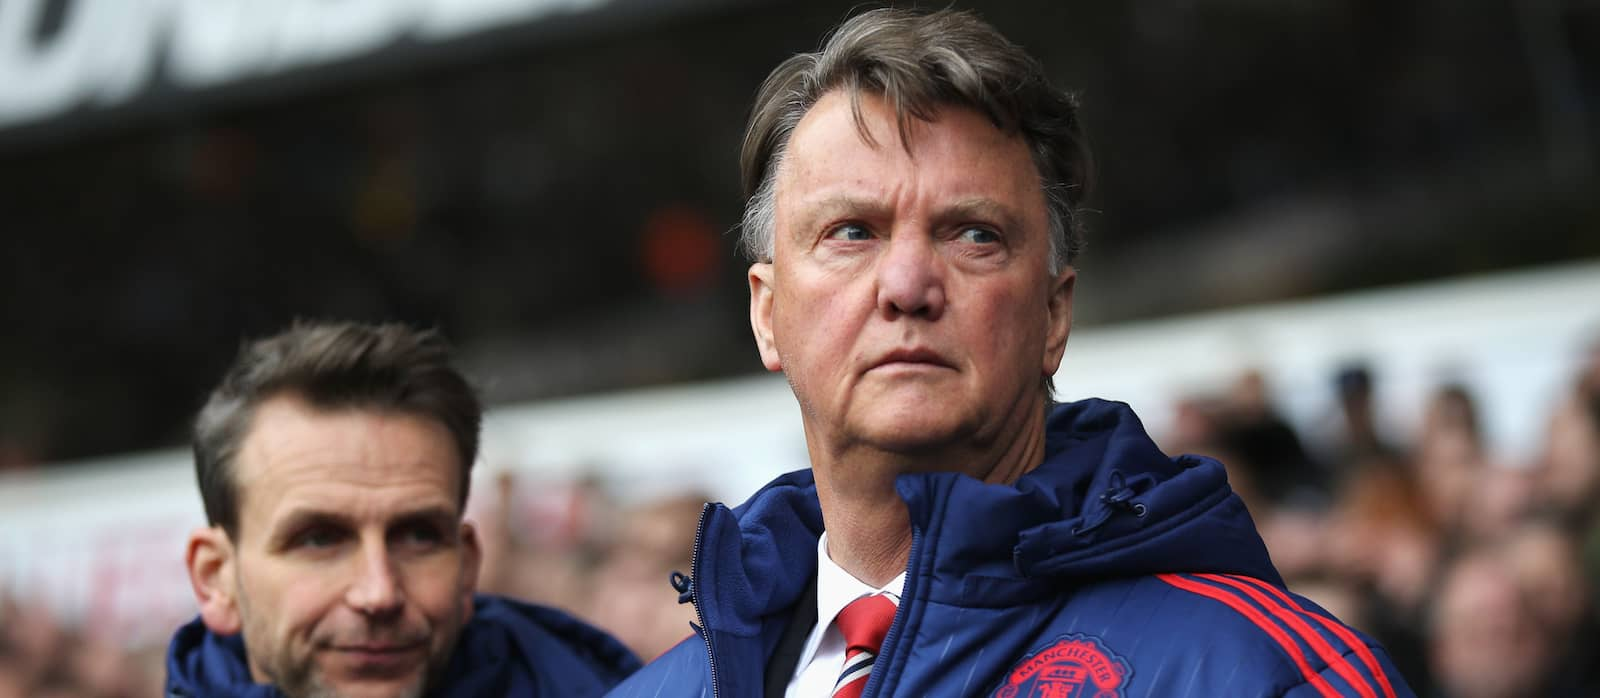 Louis van Gaal plays all four attackers out of position against Spurs